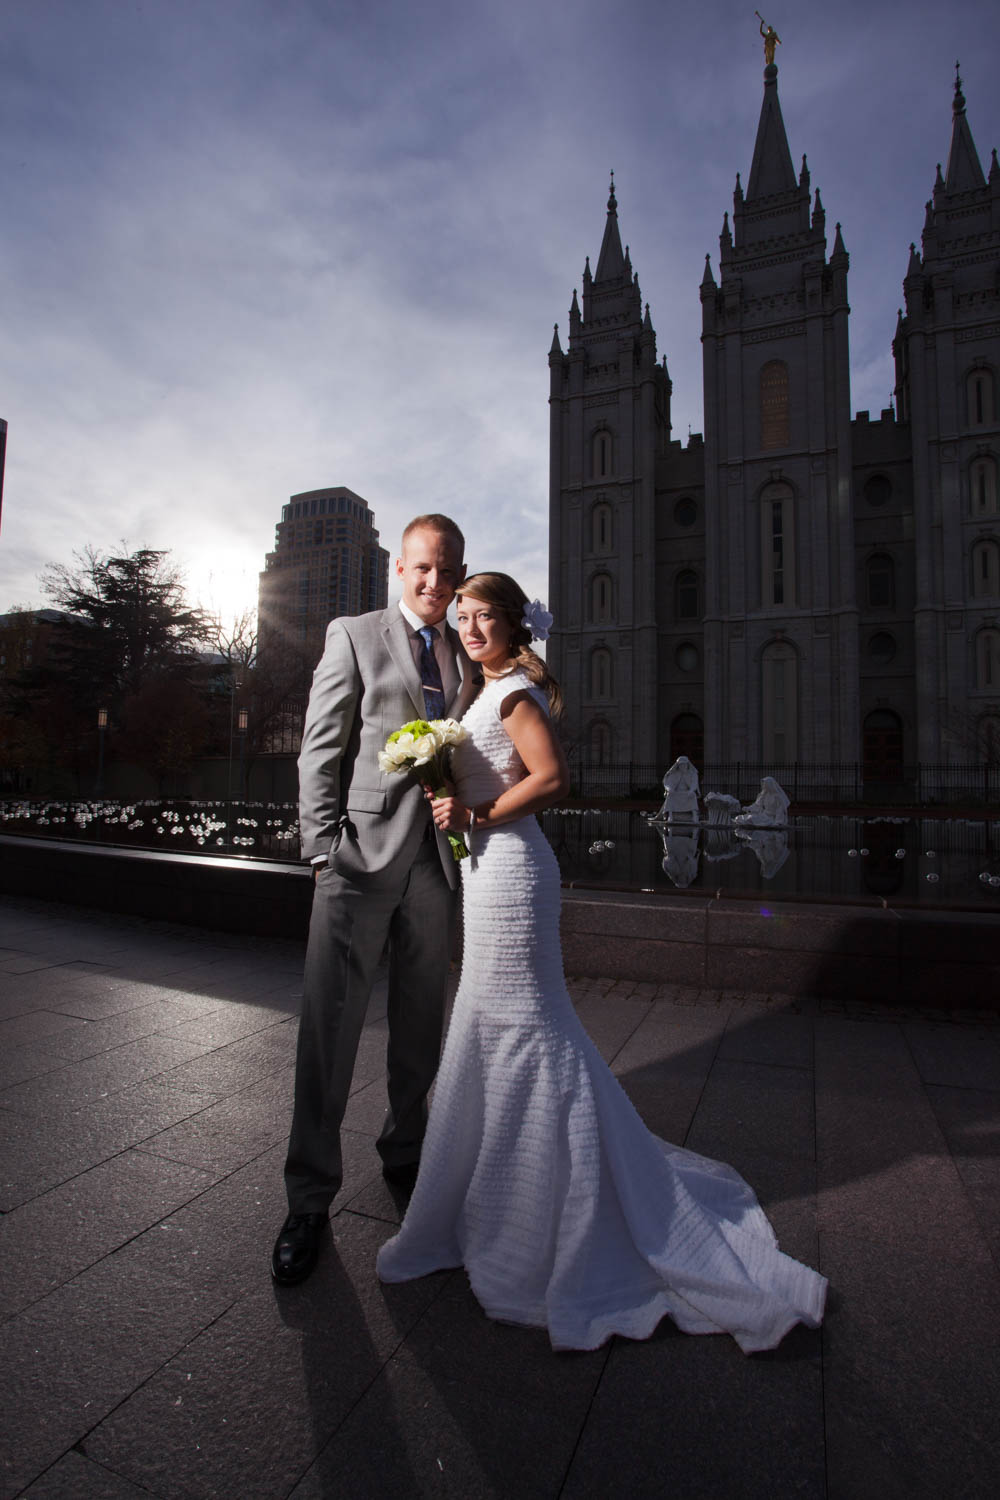 Dramatic wedding photo with the Salt Lake Temple